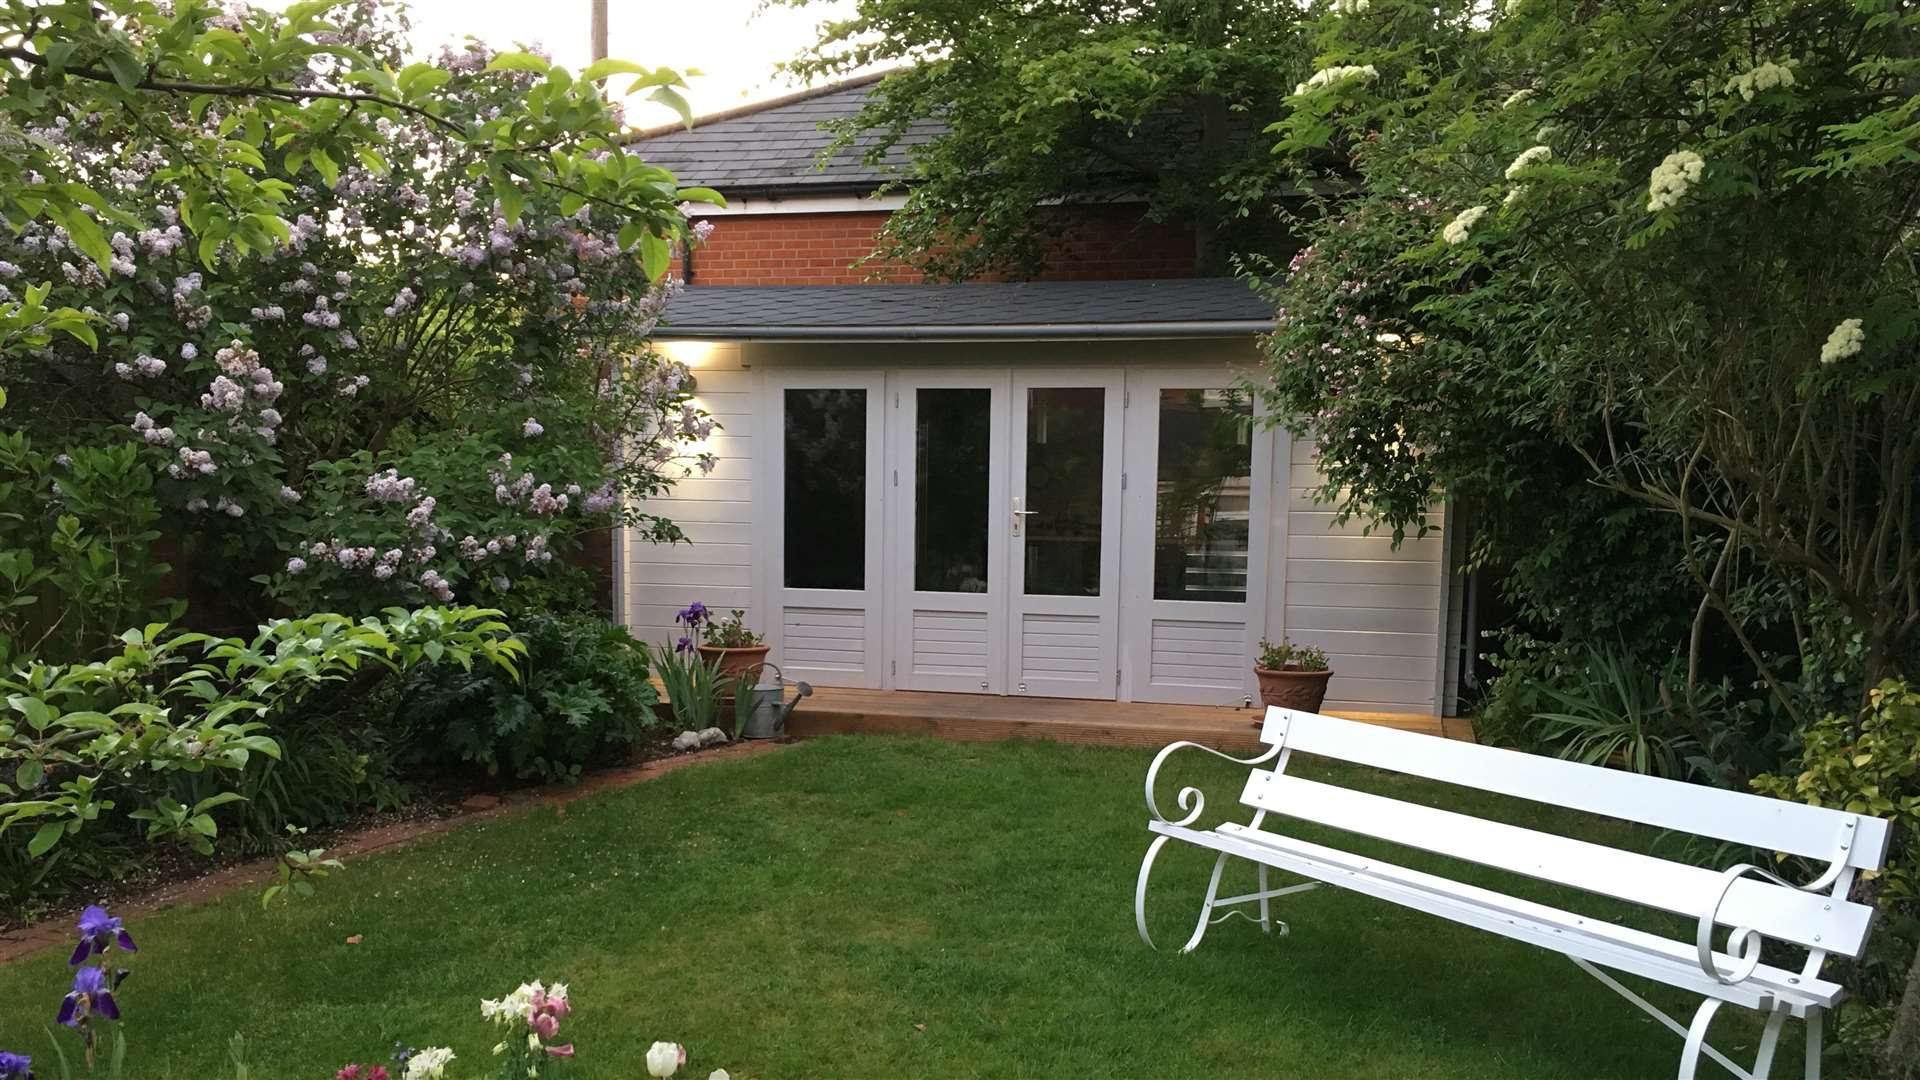 Garden buildings have surged in popularity in the last few years.